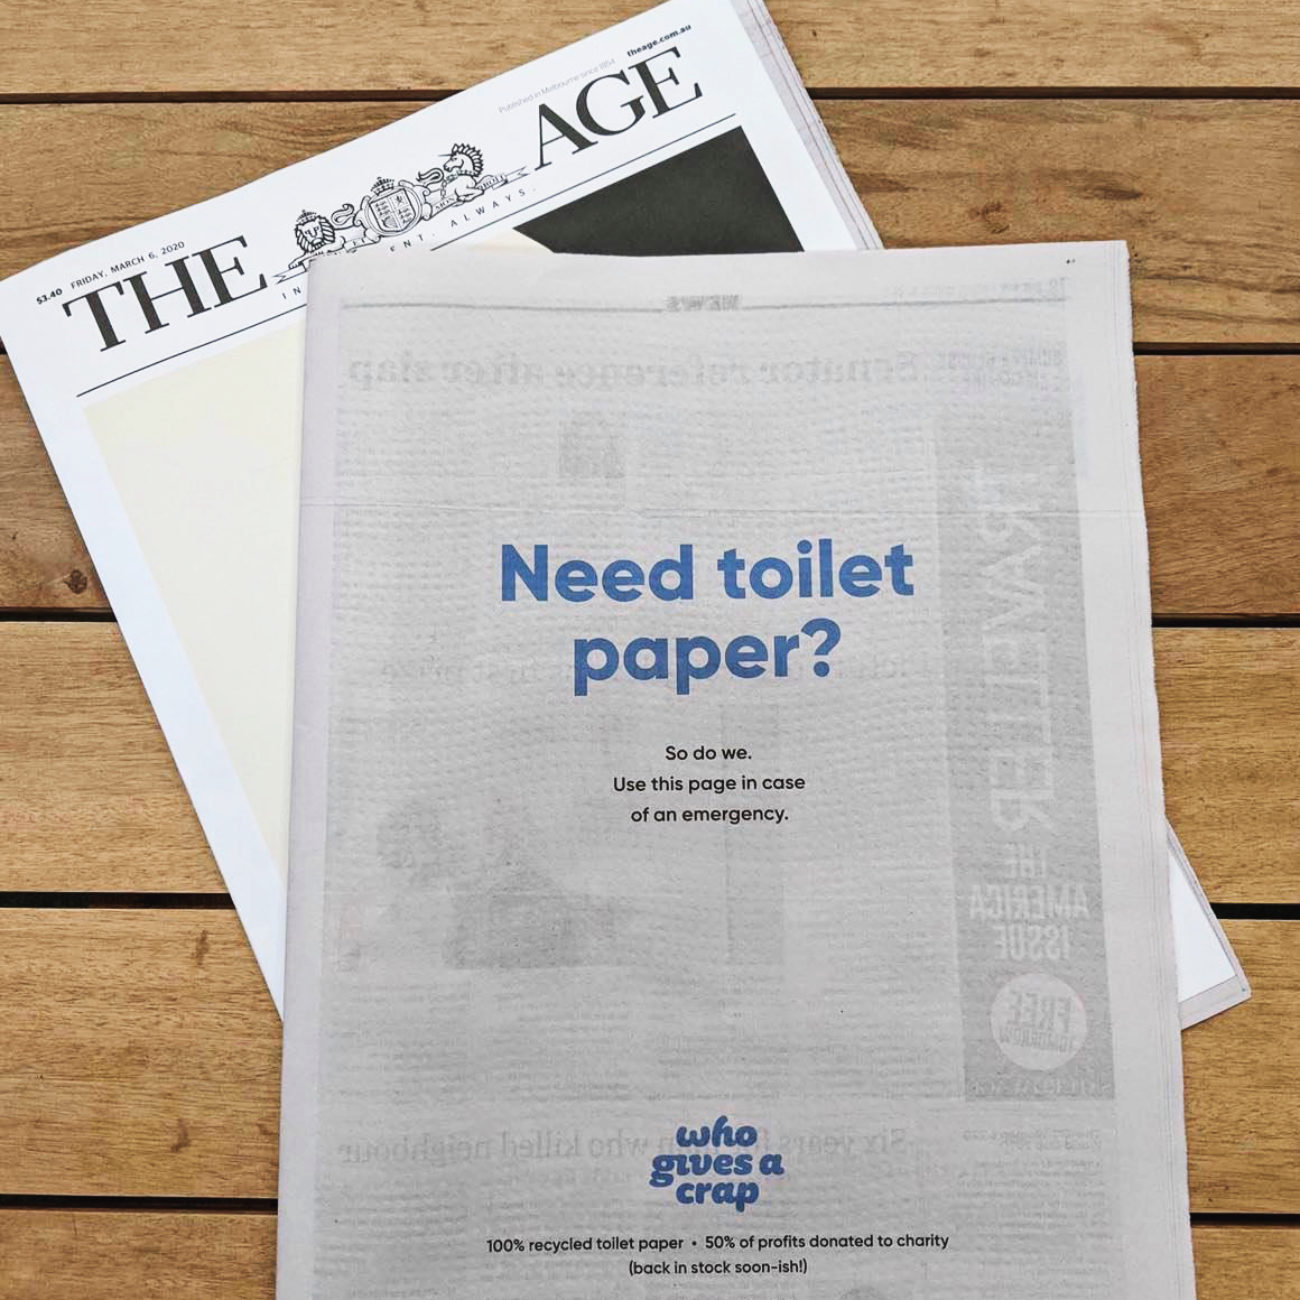 Who Gives a Crap ran a full-page ad in Australia, the day after they sold out of toilet paper amidst the pandemic rush.  Giving a crap